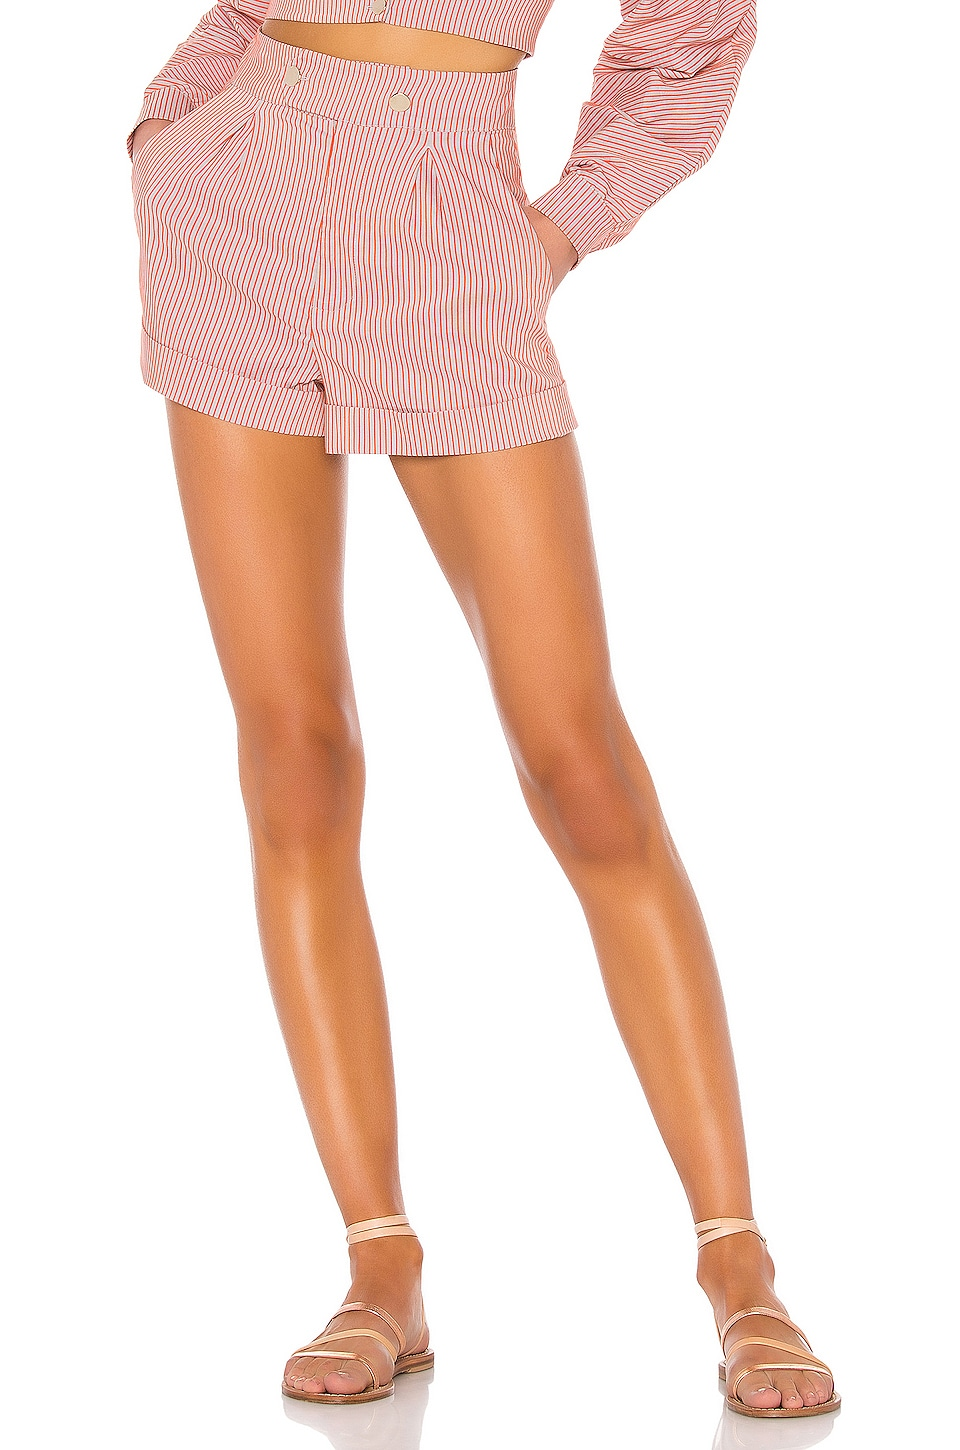 House of Harlow 1960 X REVOLVE Bismark Short in Orange & Grey